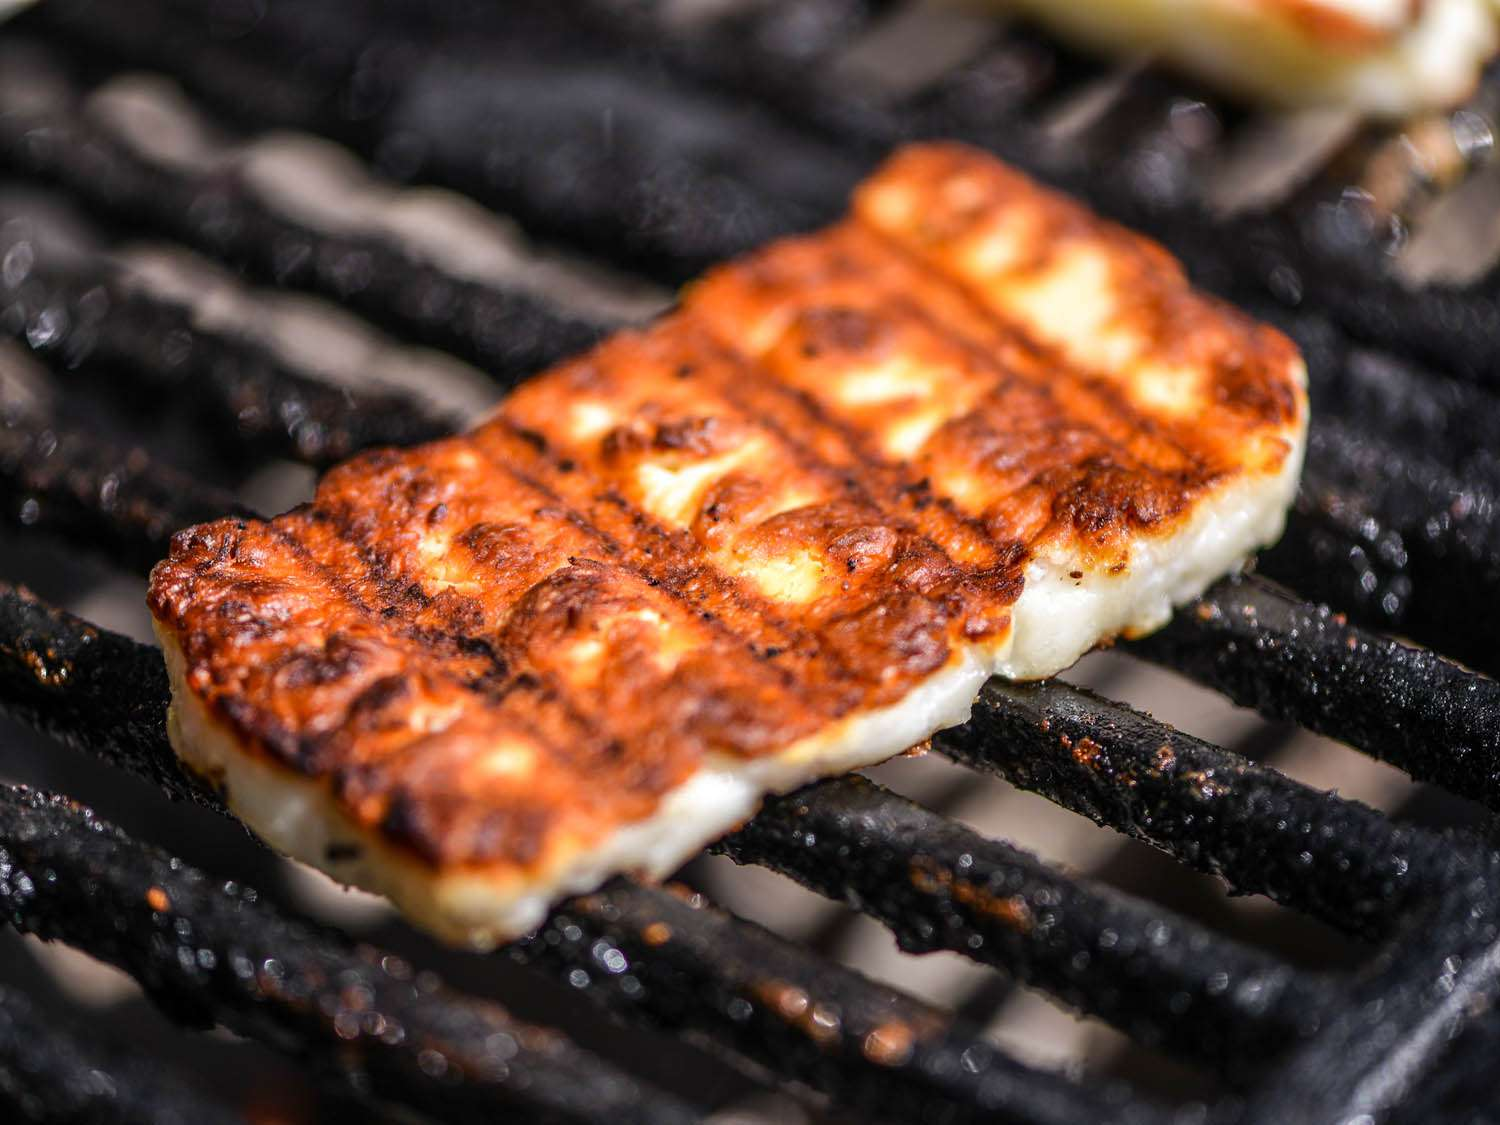 20140710-cheeses-you-can-grill-halloumi-grilled-joshua-bousel.jpg